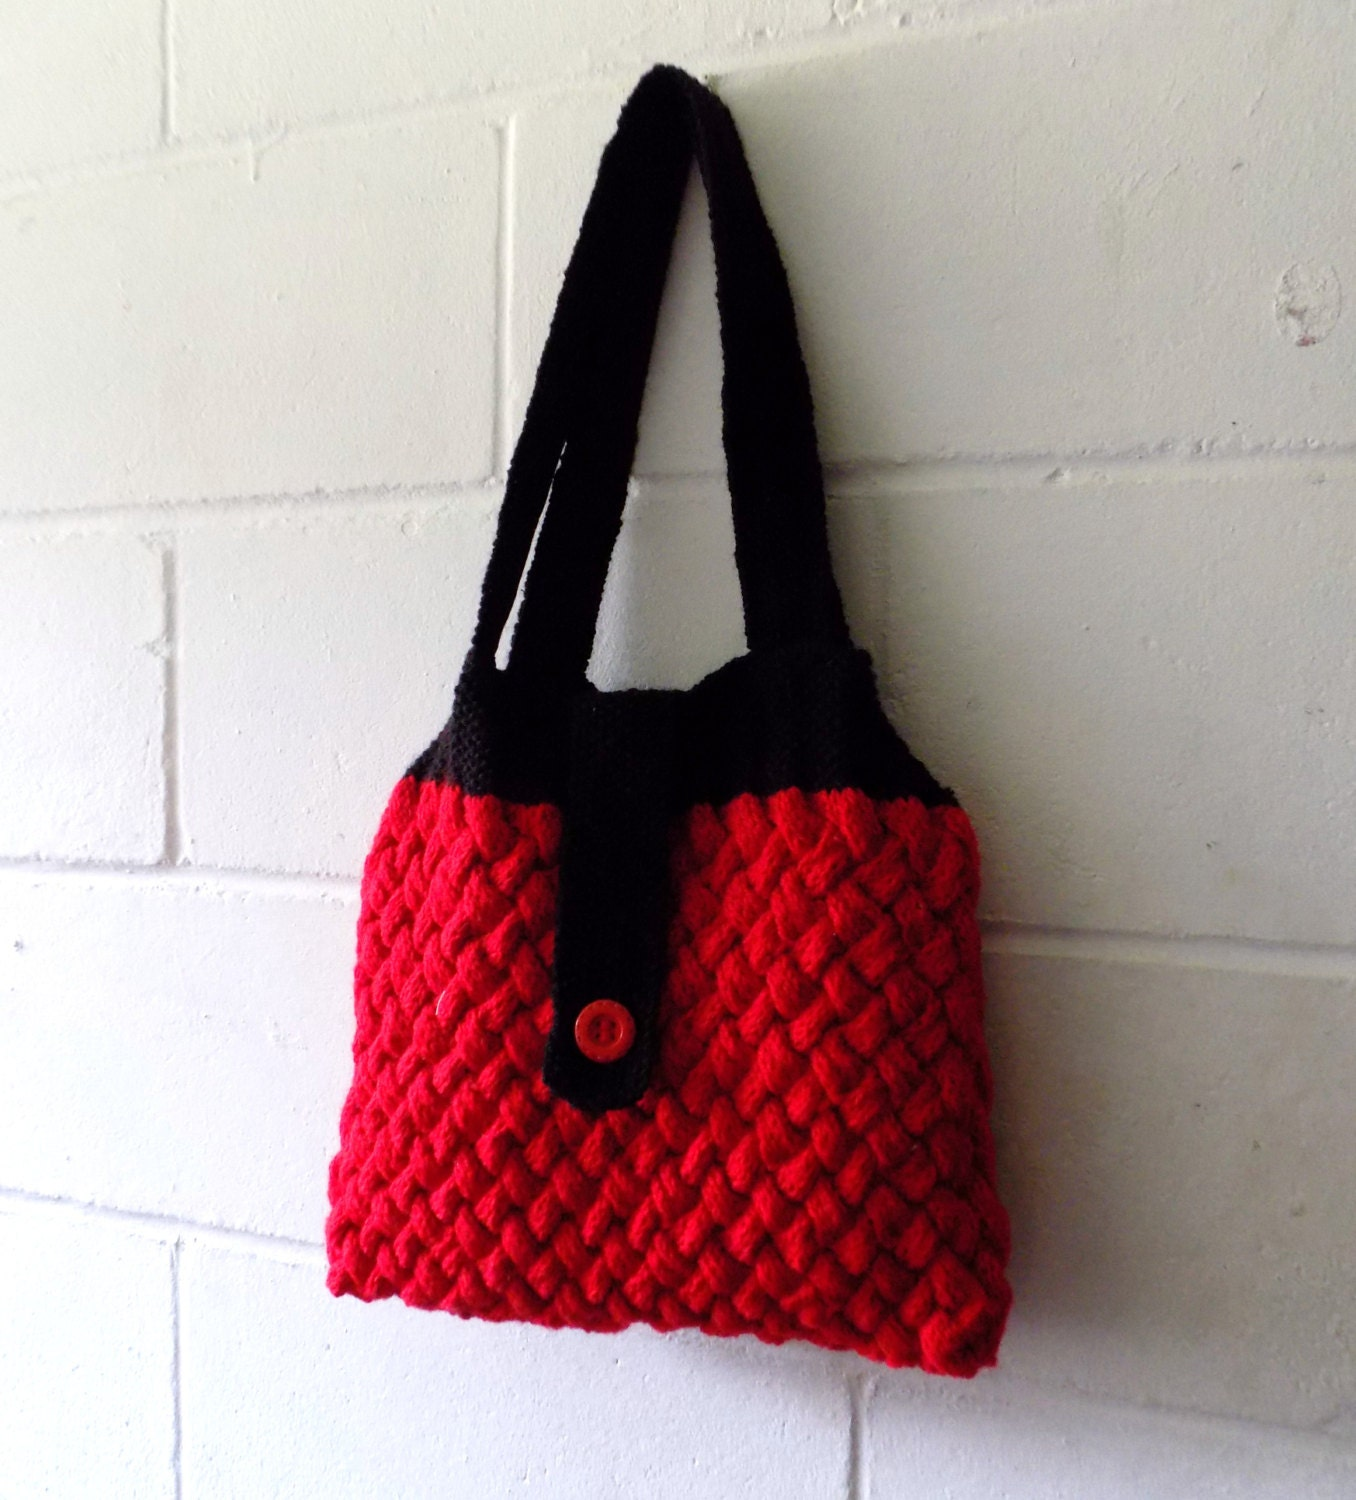 Hand Knitted Bag Red and Black Cable Knit Handbag Knitted Purse